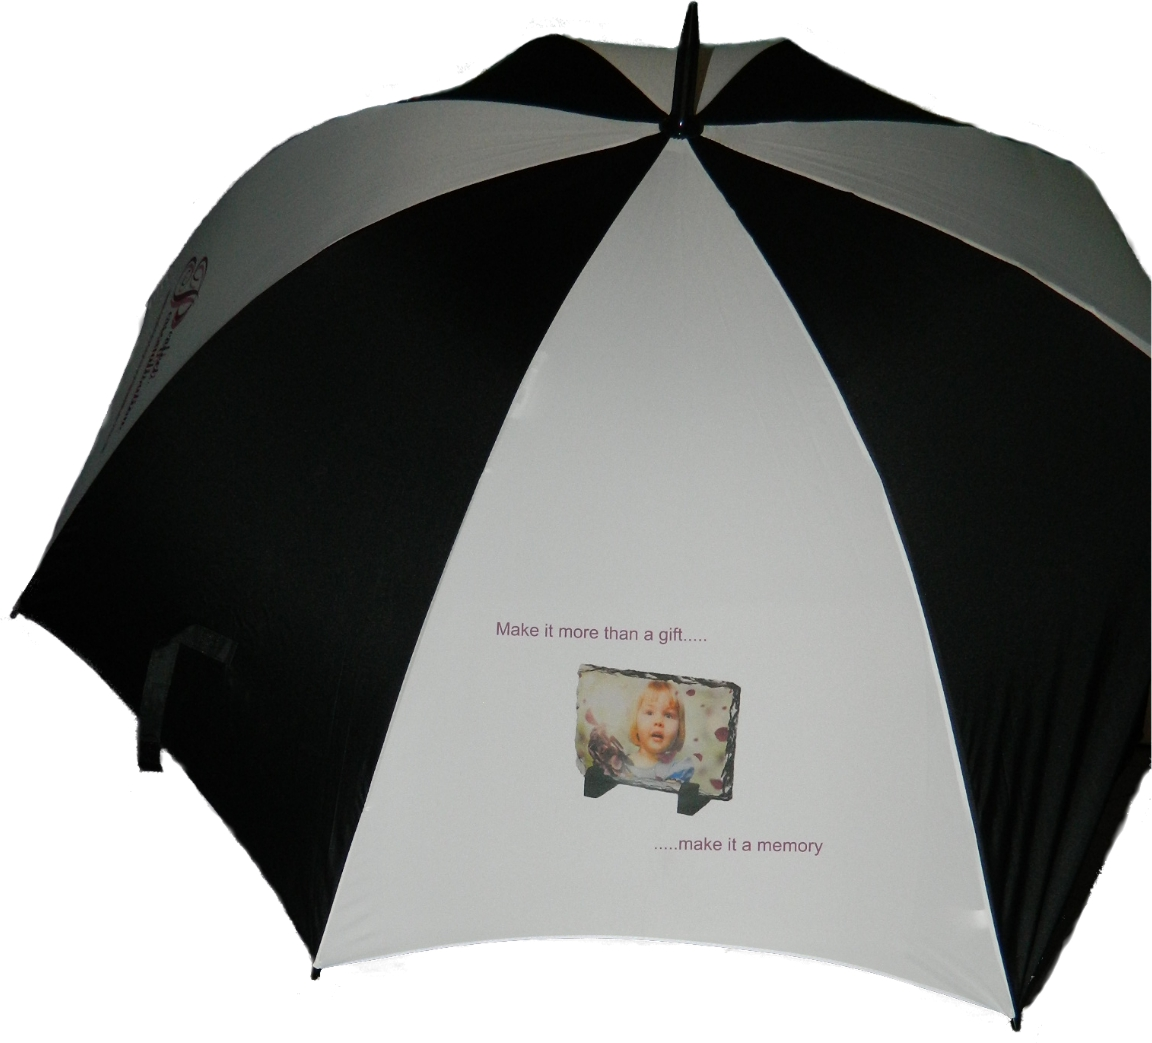 Large (golf) umbrella